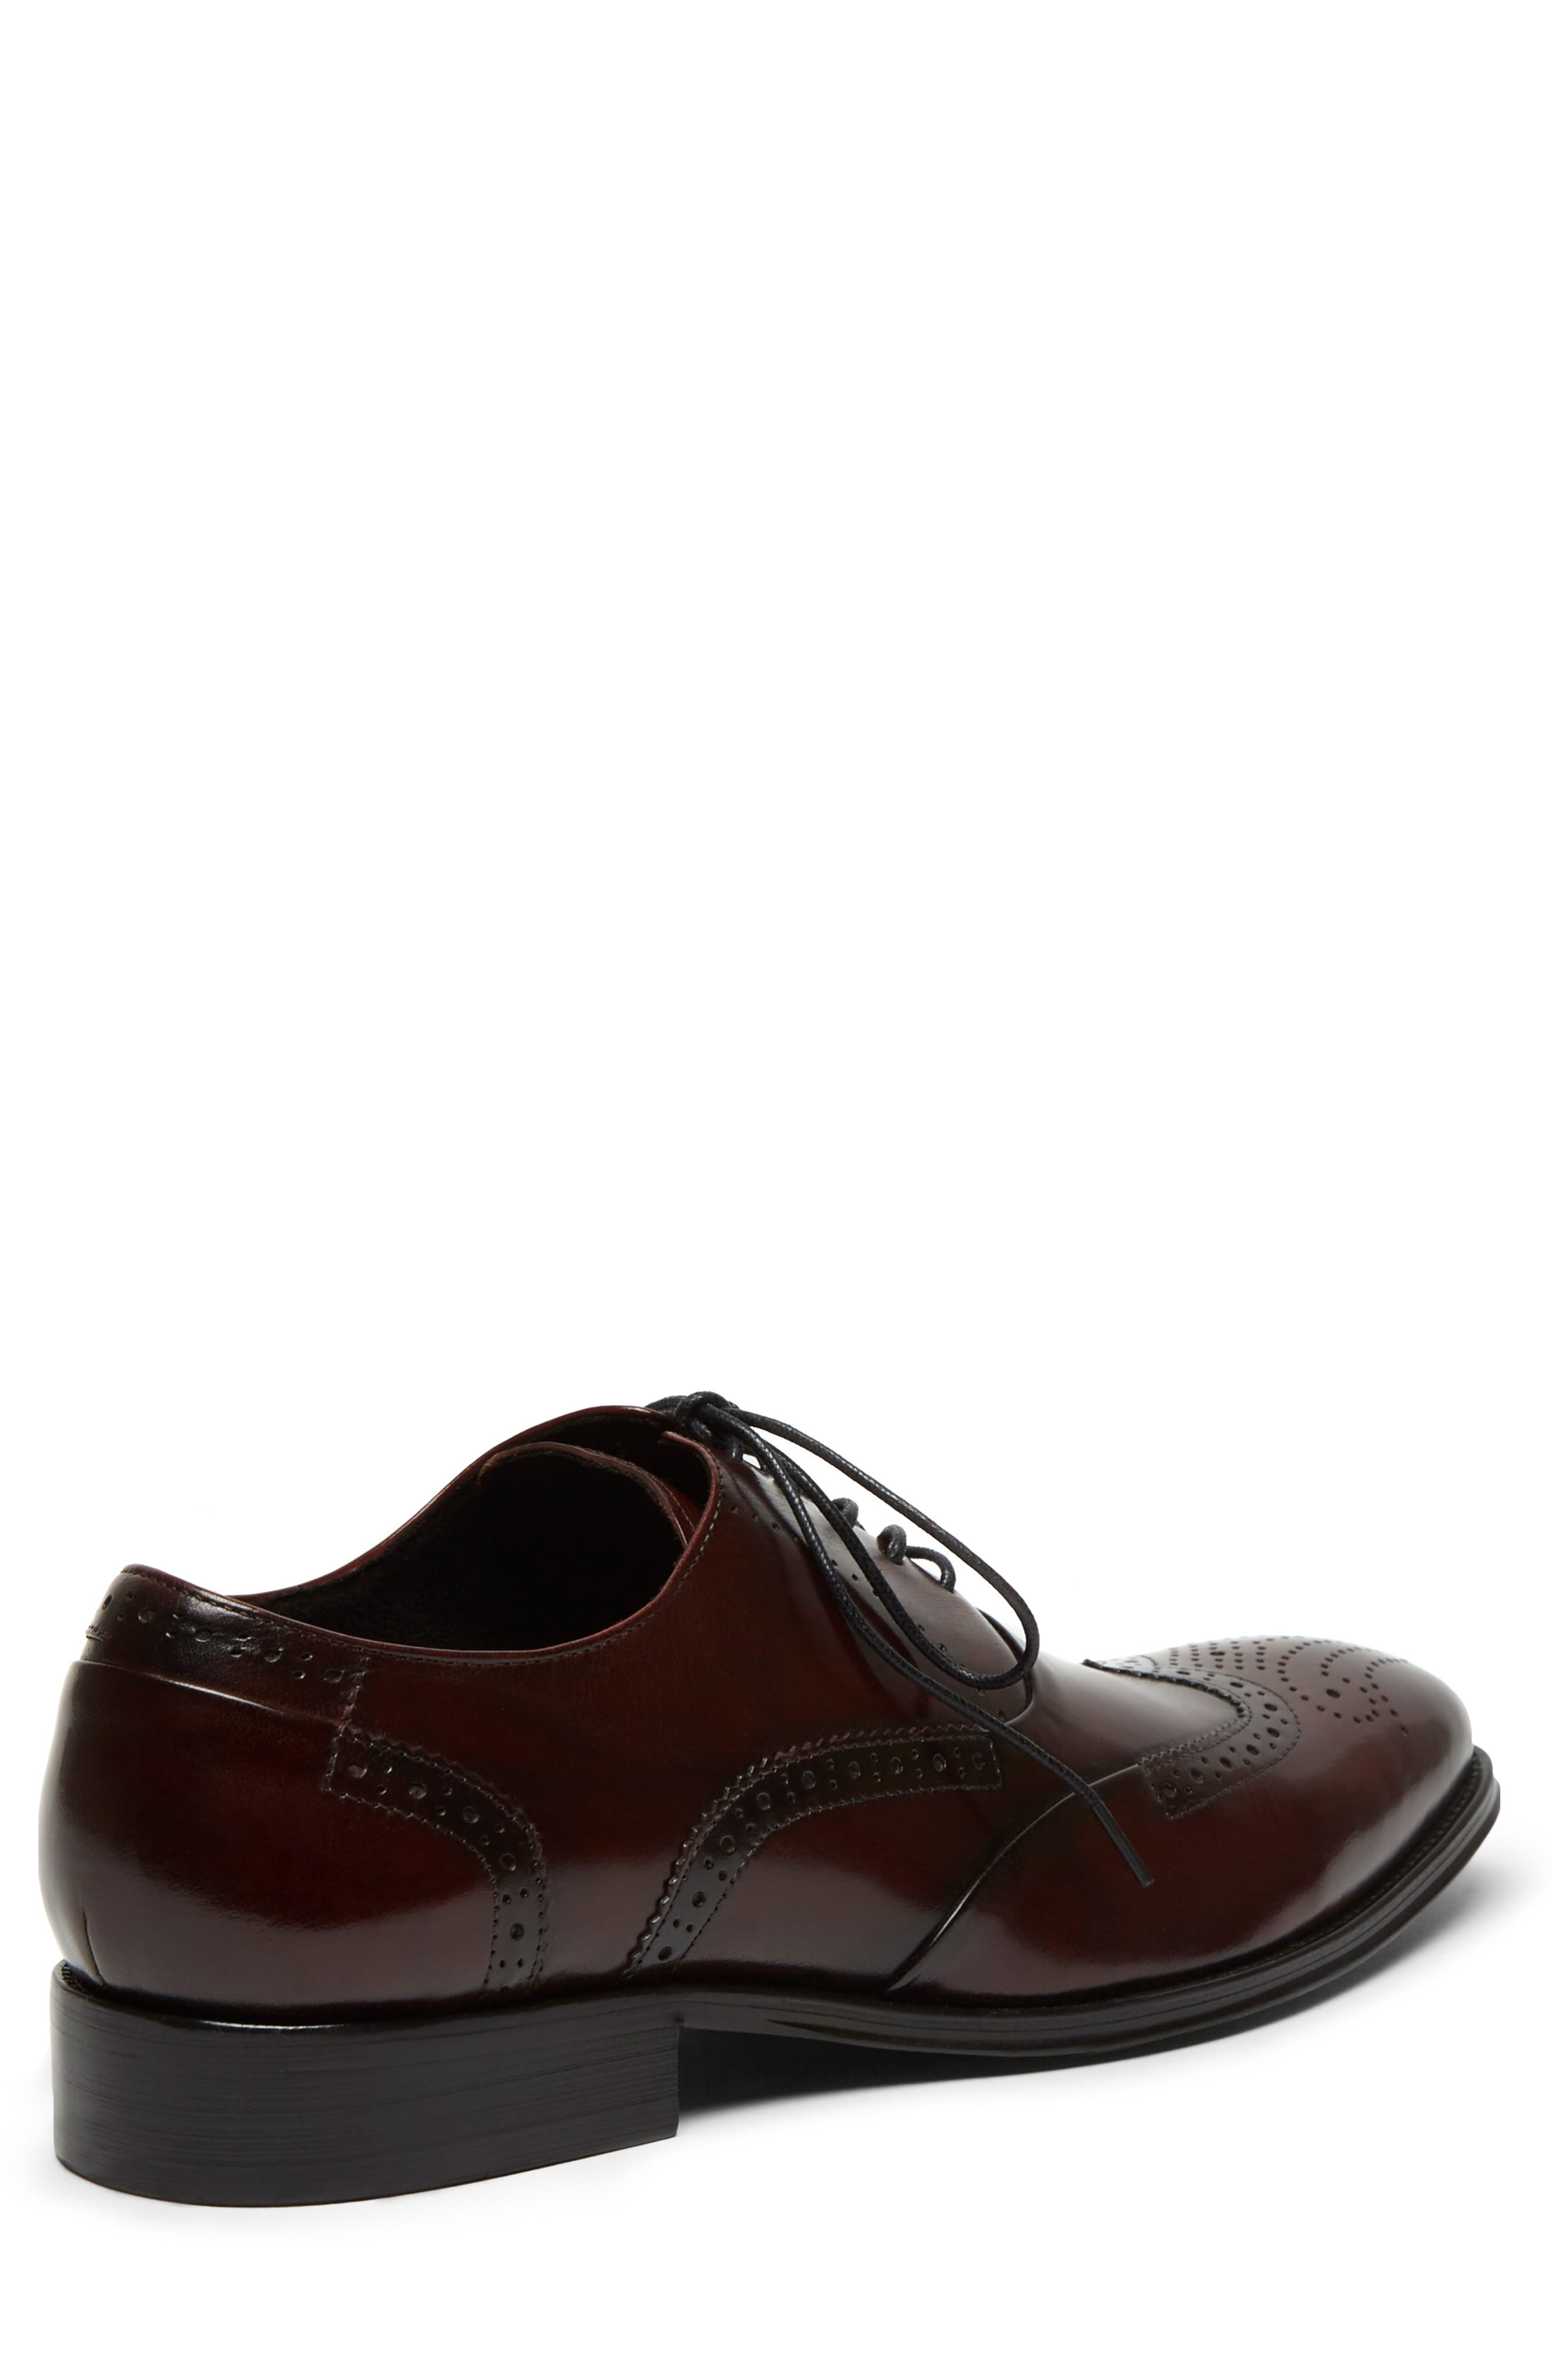 KENNETH COLE NEW YORK, Brant Wingtip, Alternate thumbnail 5, color, BORDEAUX LEATHER